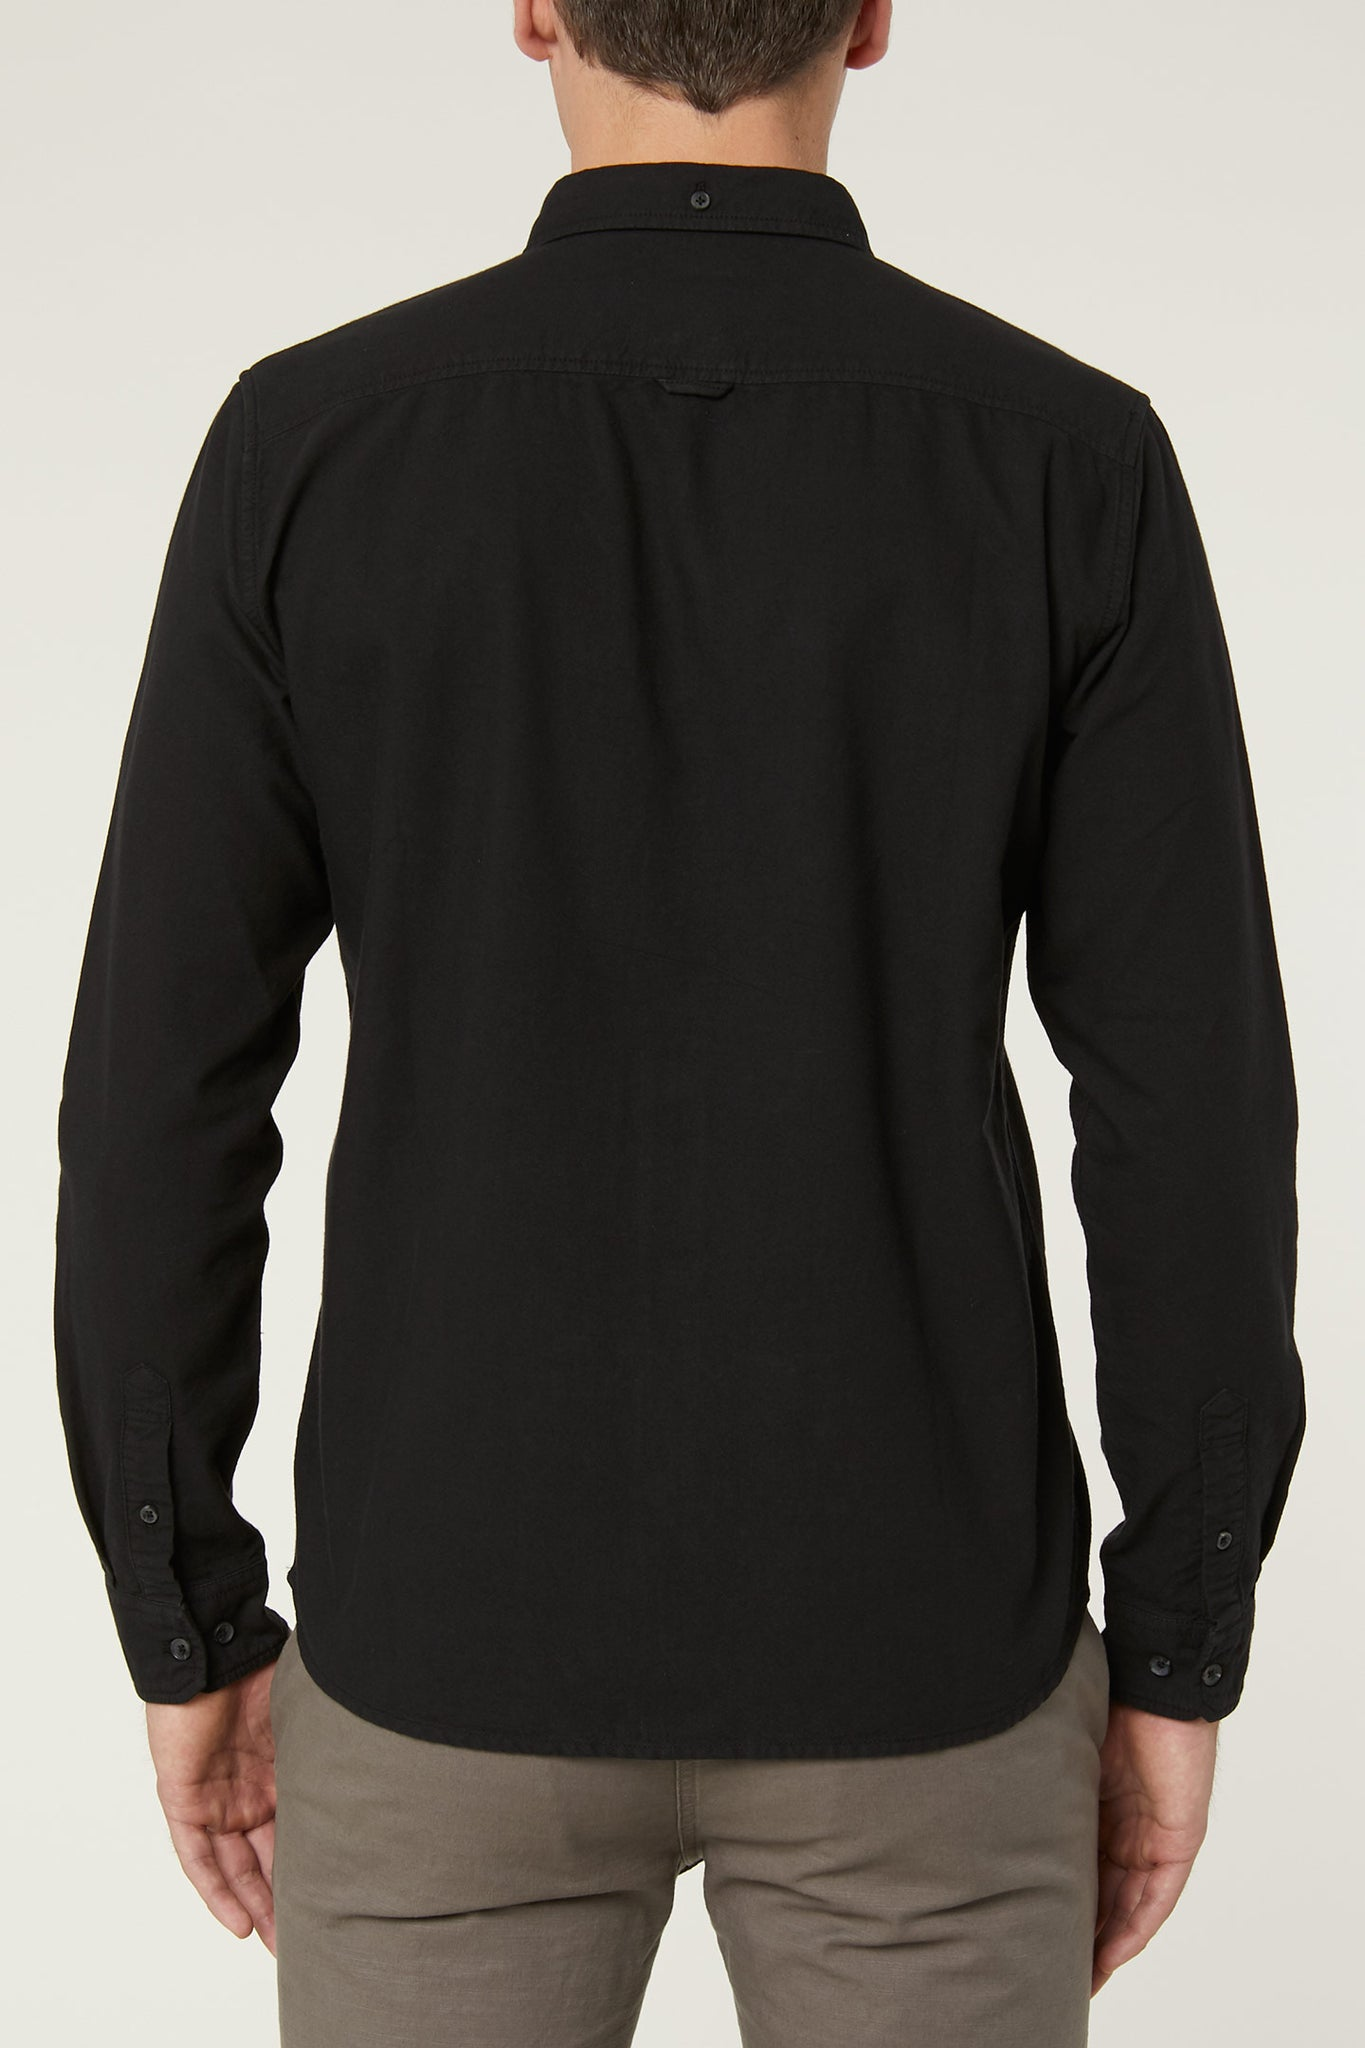 Sealed Long Sleeve Shirt | O'Neill Clothing USA